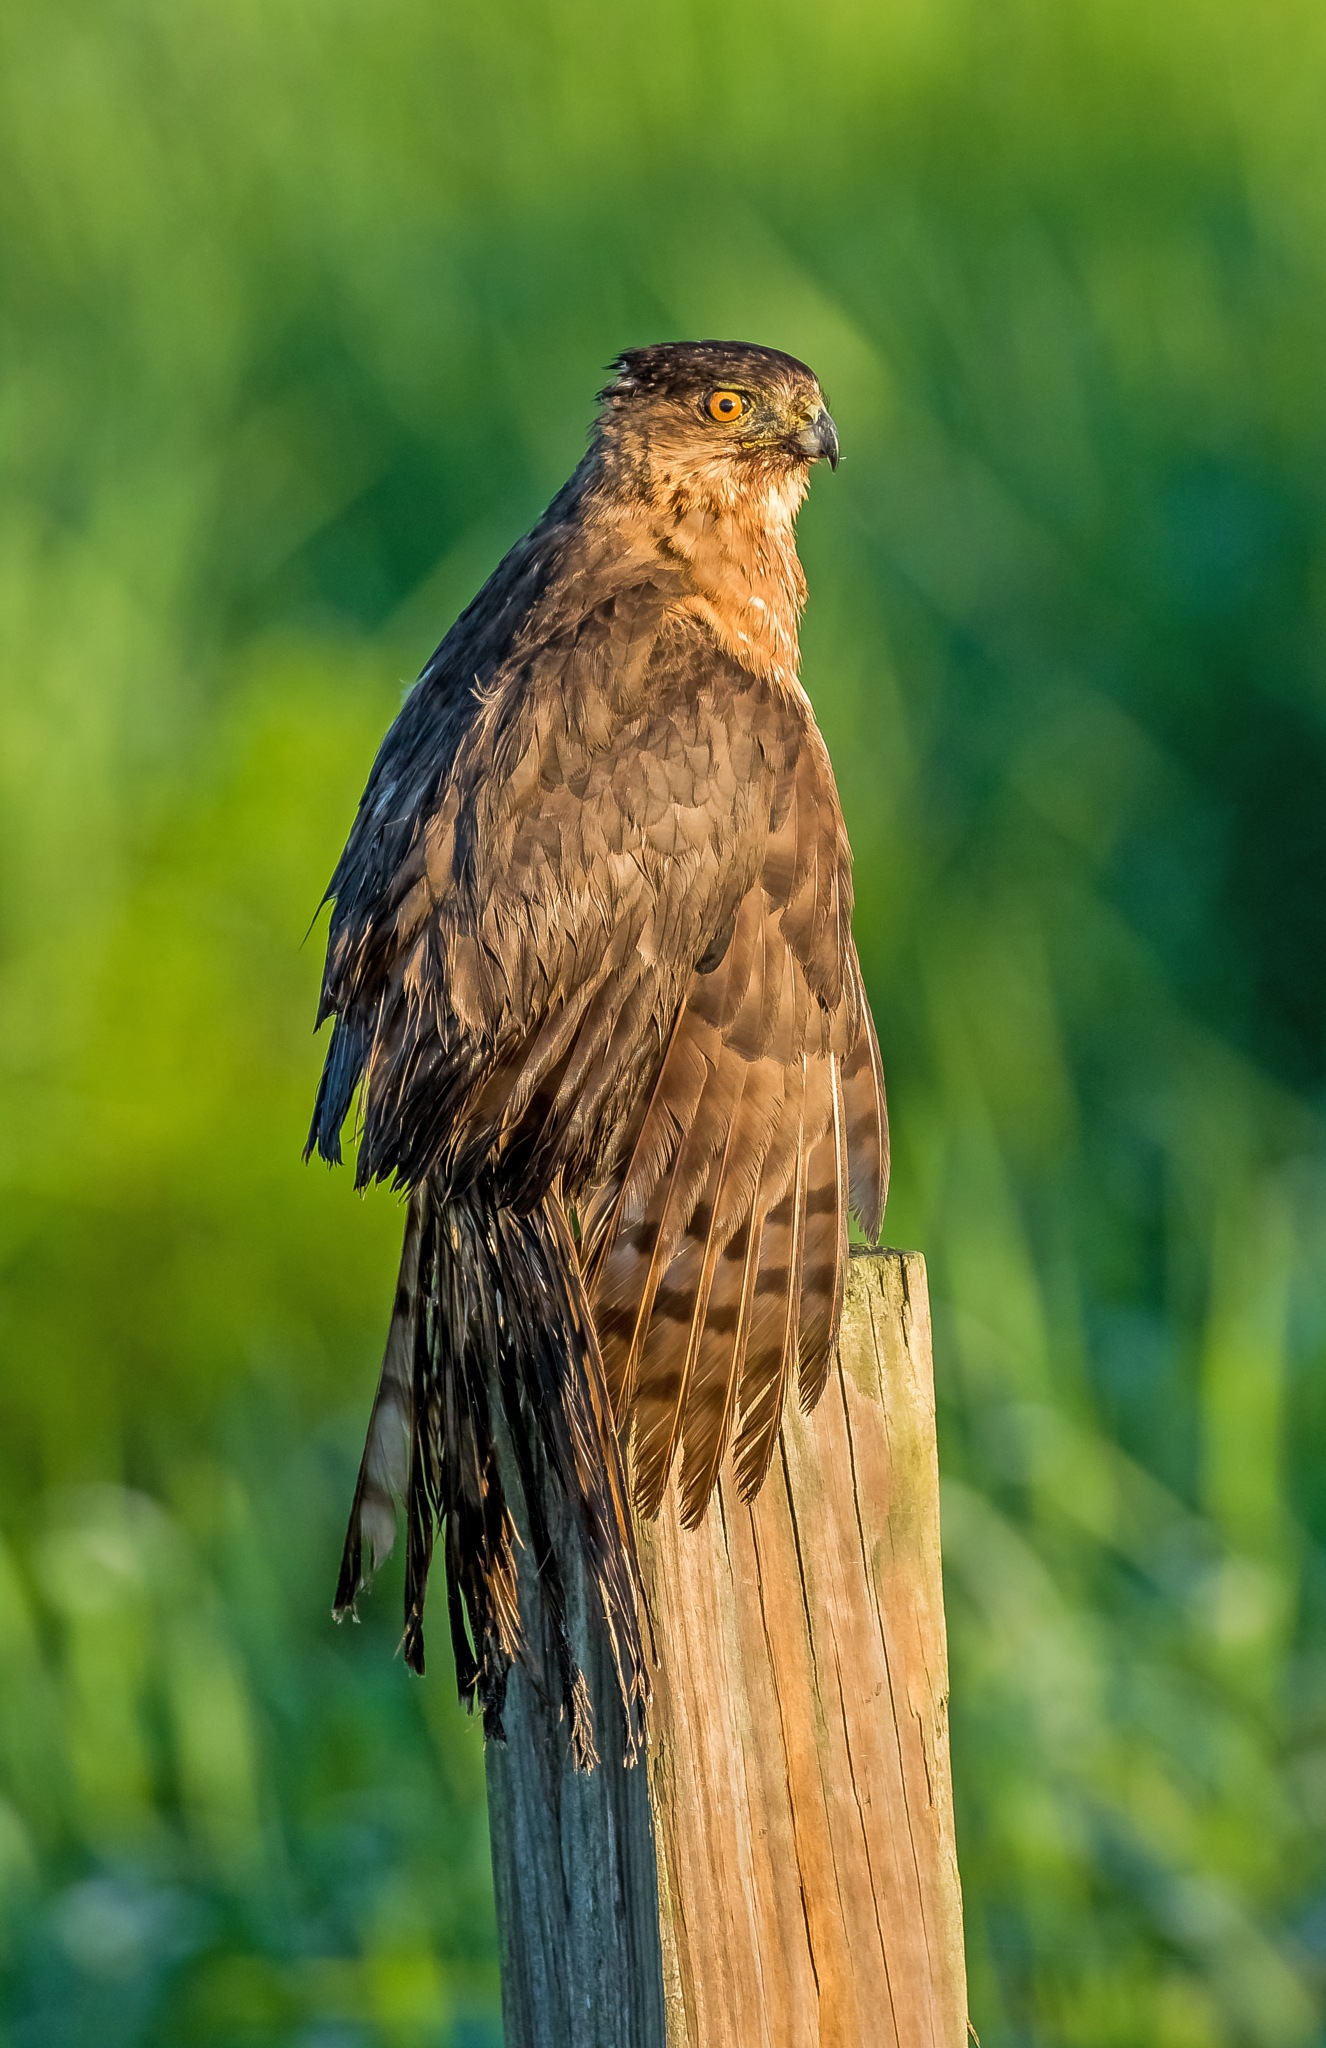 A very cooperative Cooper's hawk by Barry Melamed